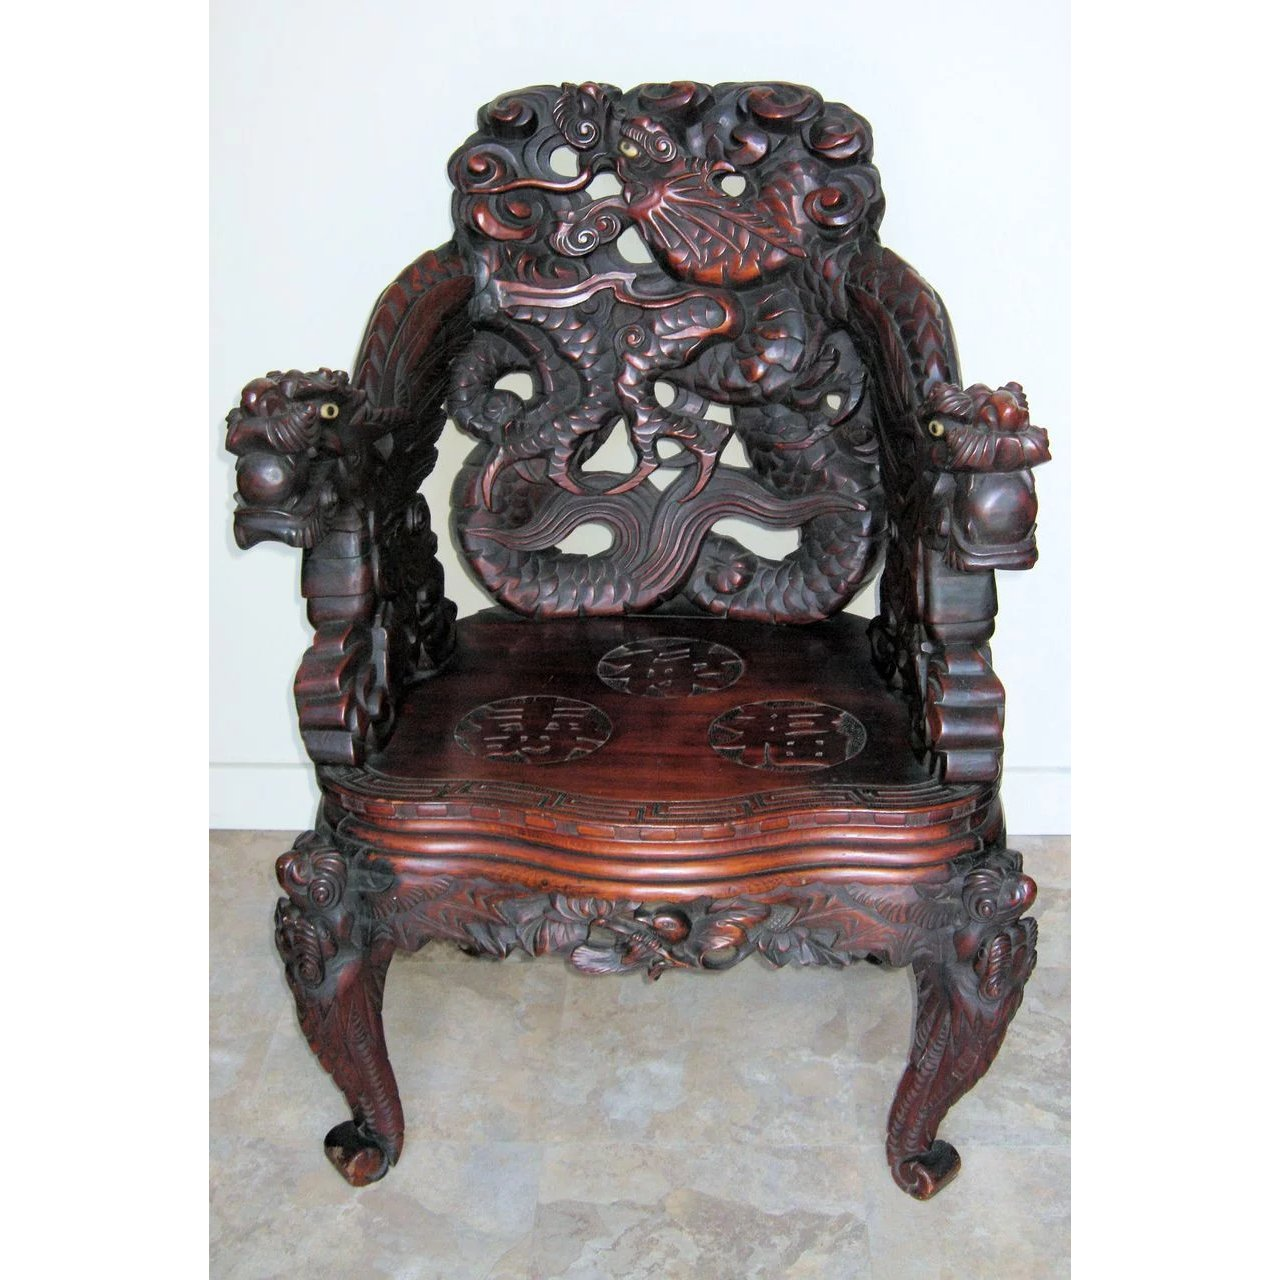 Dragon Chair Japanese Meiji Period Art Nouveau Carved Dragon Chair